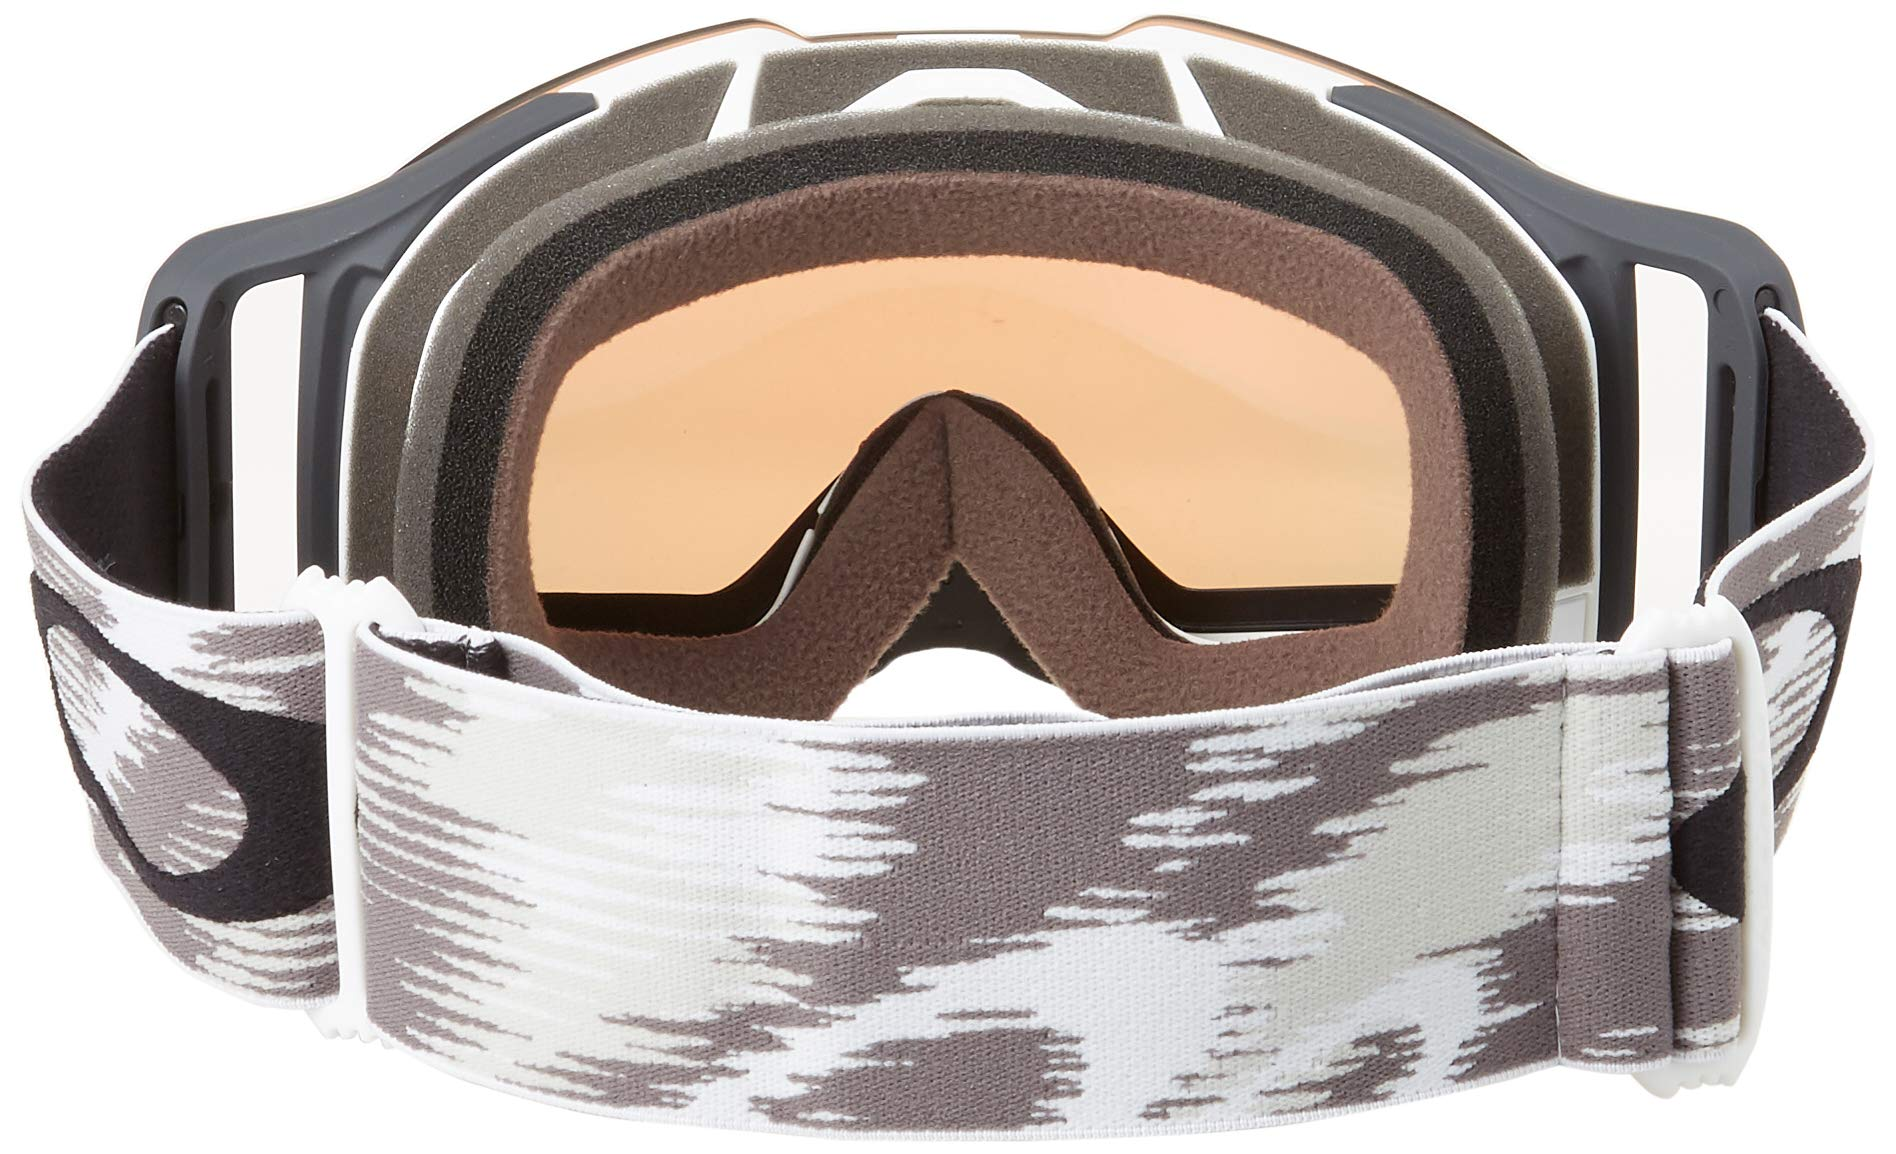 Oakley Unisex-Adult Goggles White Large by Oakley (Image #4)